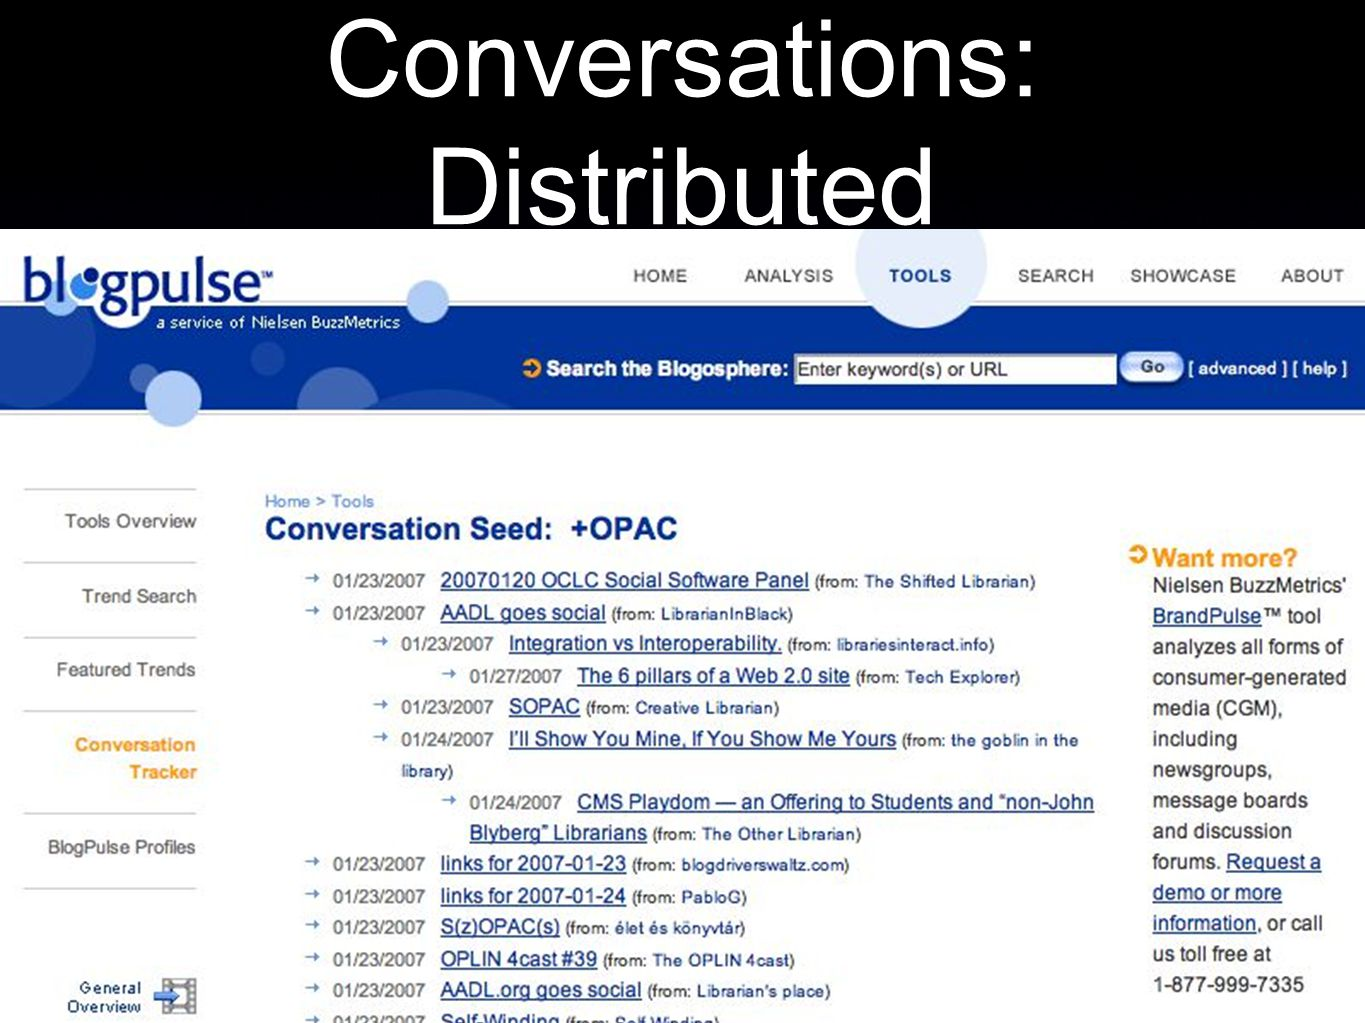 Conversations: Distributed